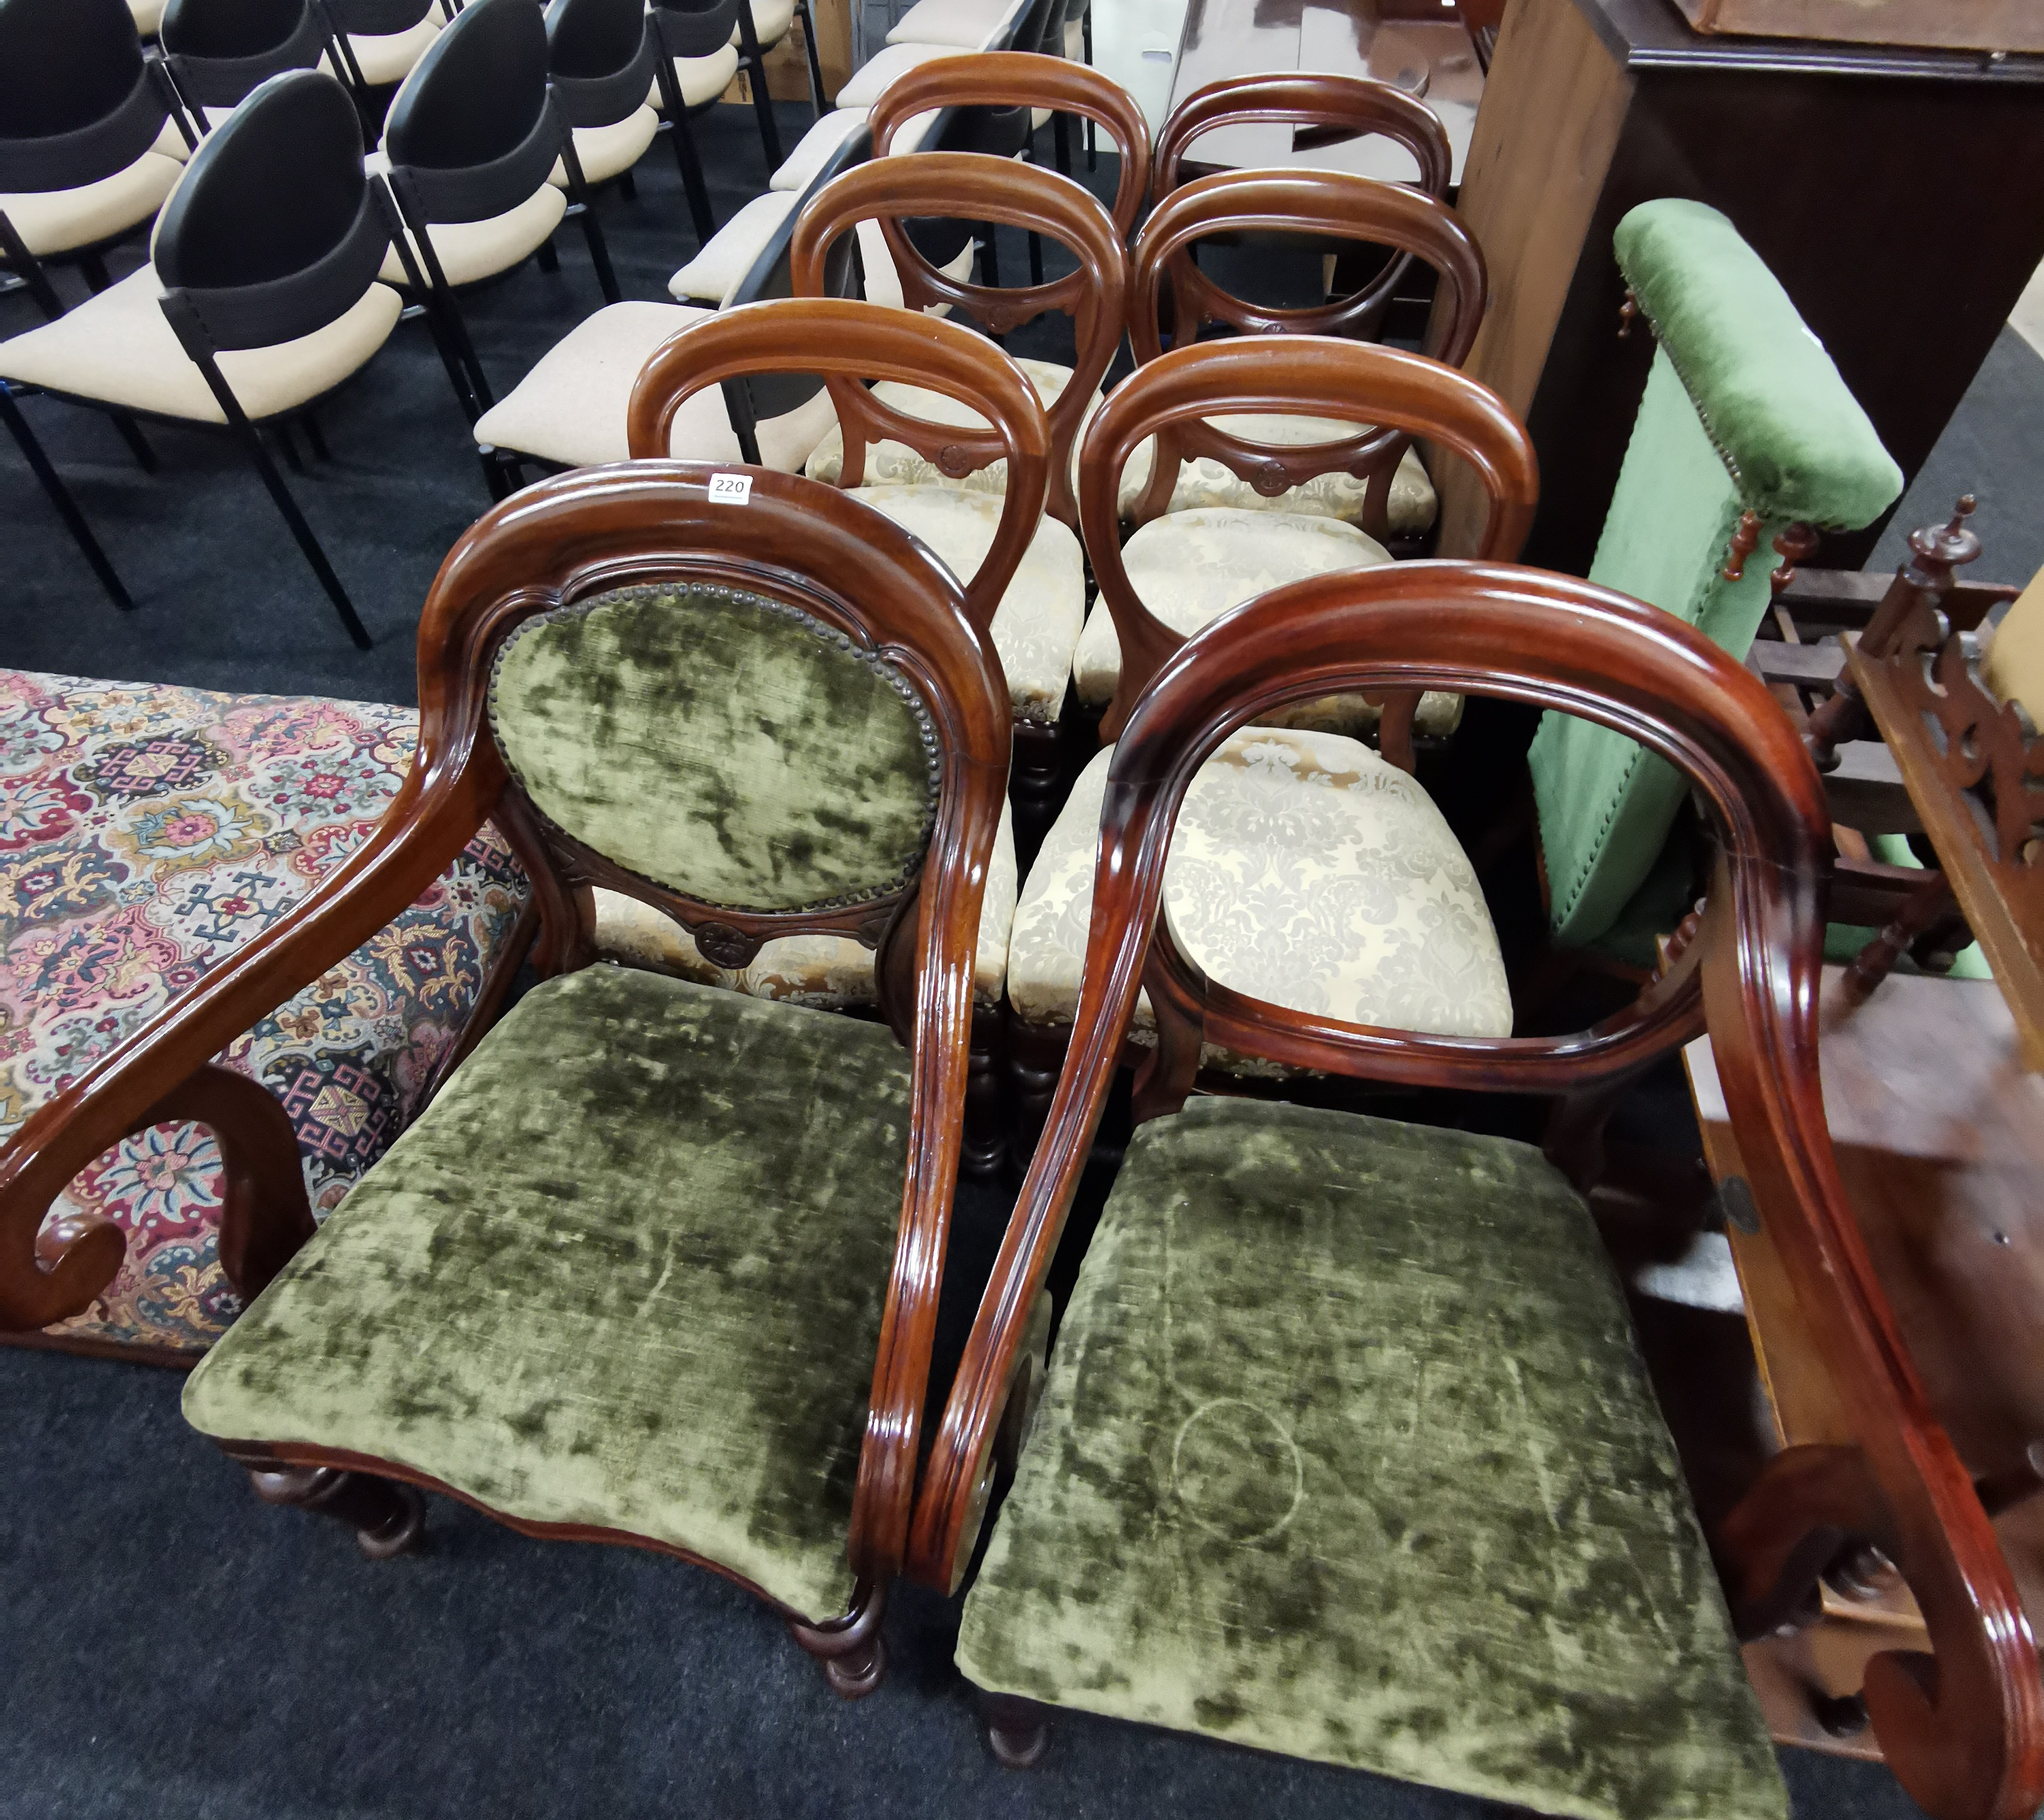 Lot 220 - SET OF 6 VICTORIAN BALLOON BACK CHAIRS & 2 CARVERS